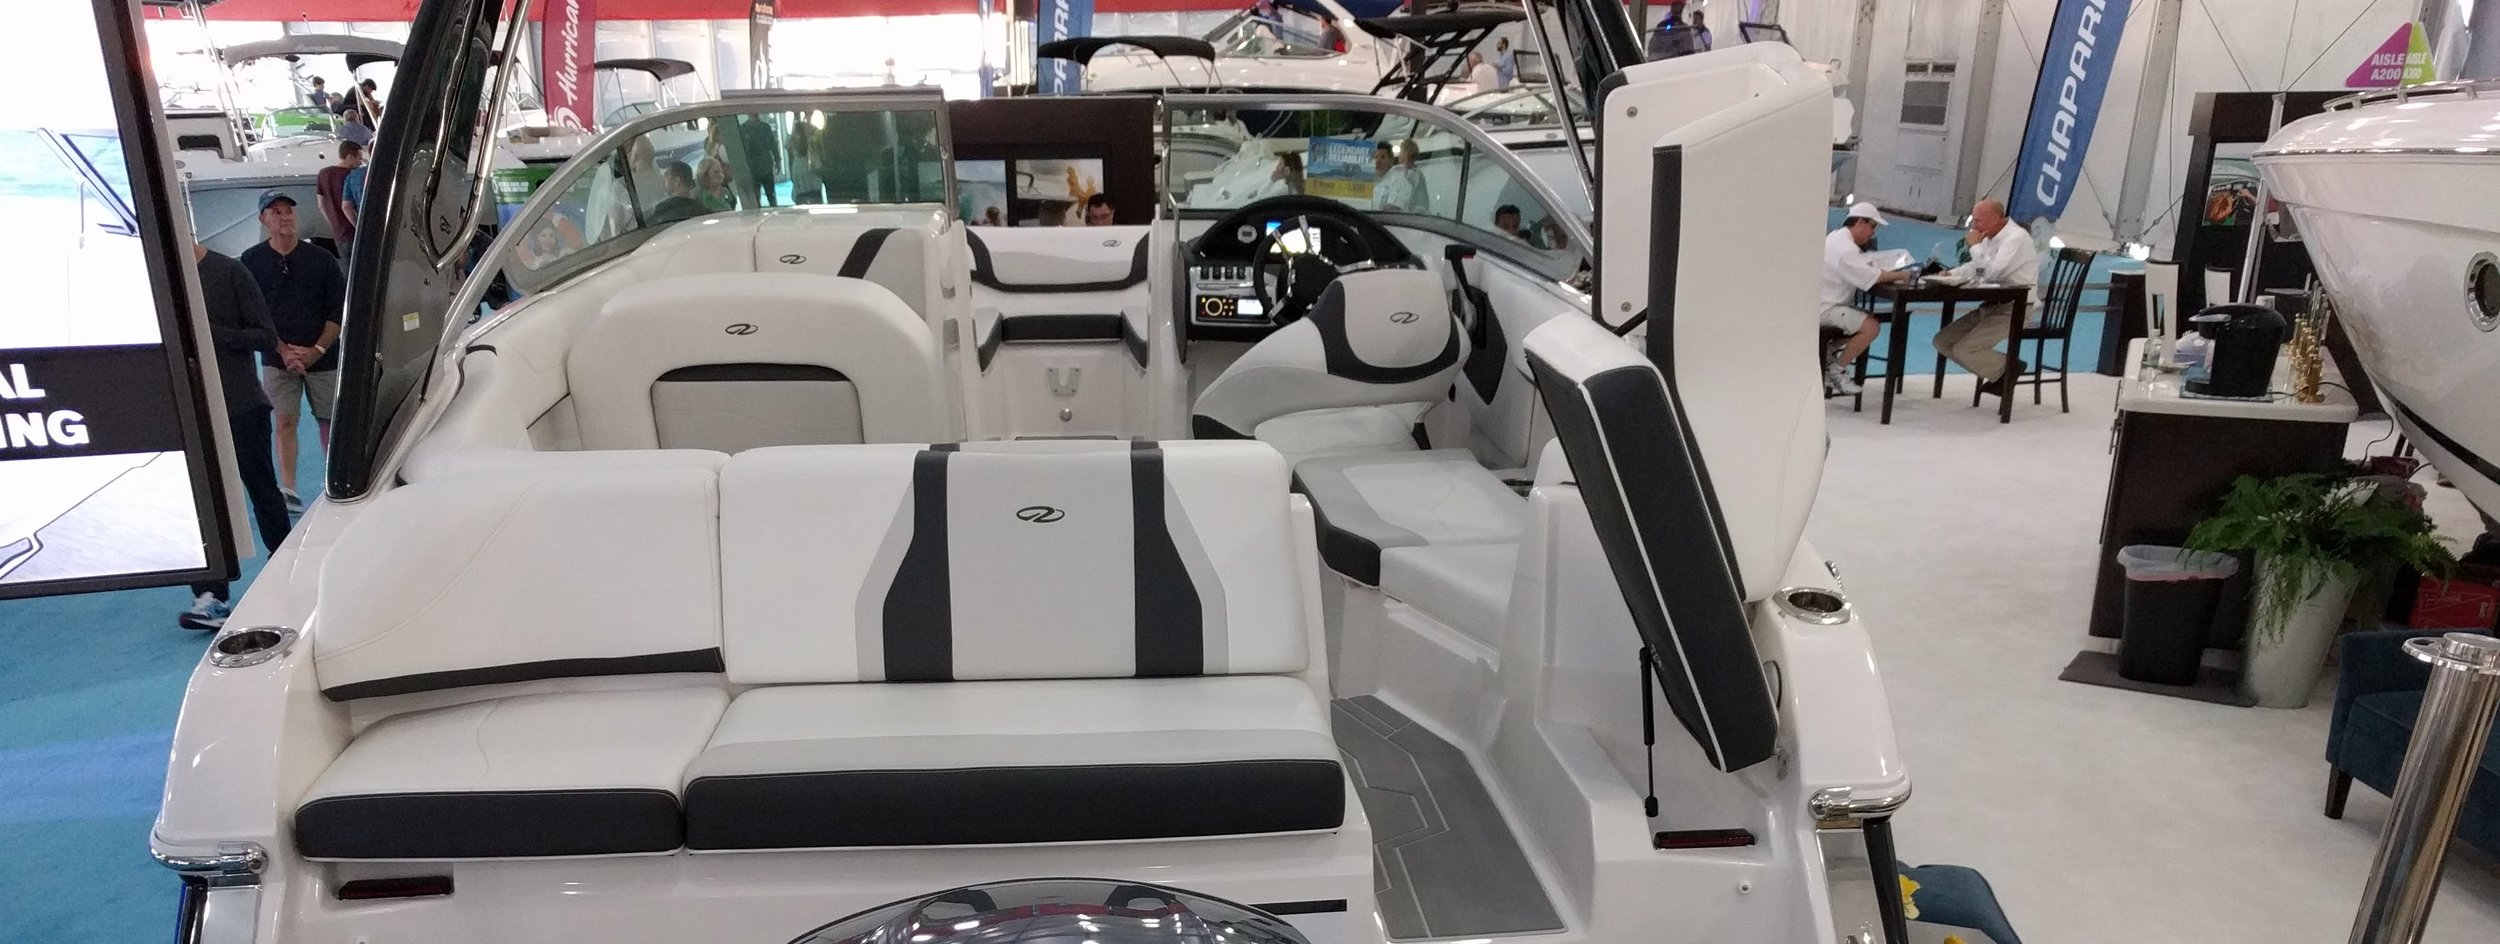 Innovation in modern family boats is seeing how many different seating arrangements you can jam into a small space. Nobody actually stands back and considers that most of the seats are in a bad position and putting 4 people in the bow isn't necessarily smart.